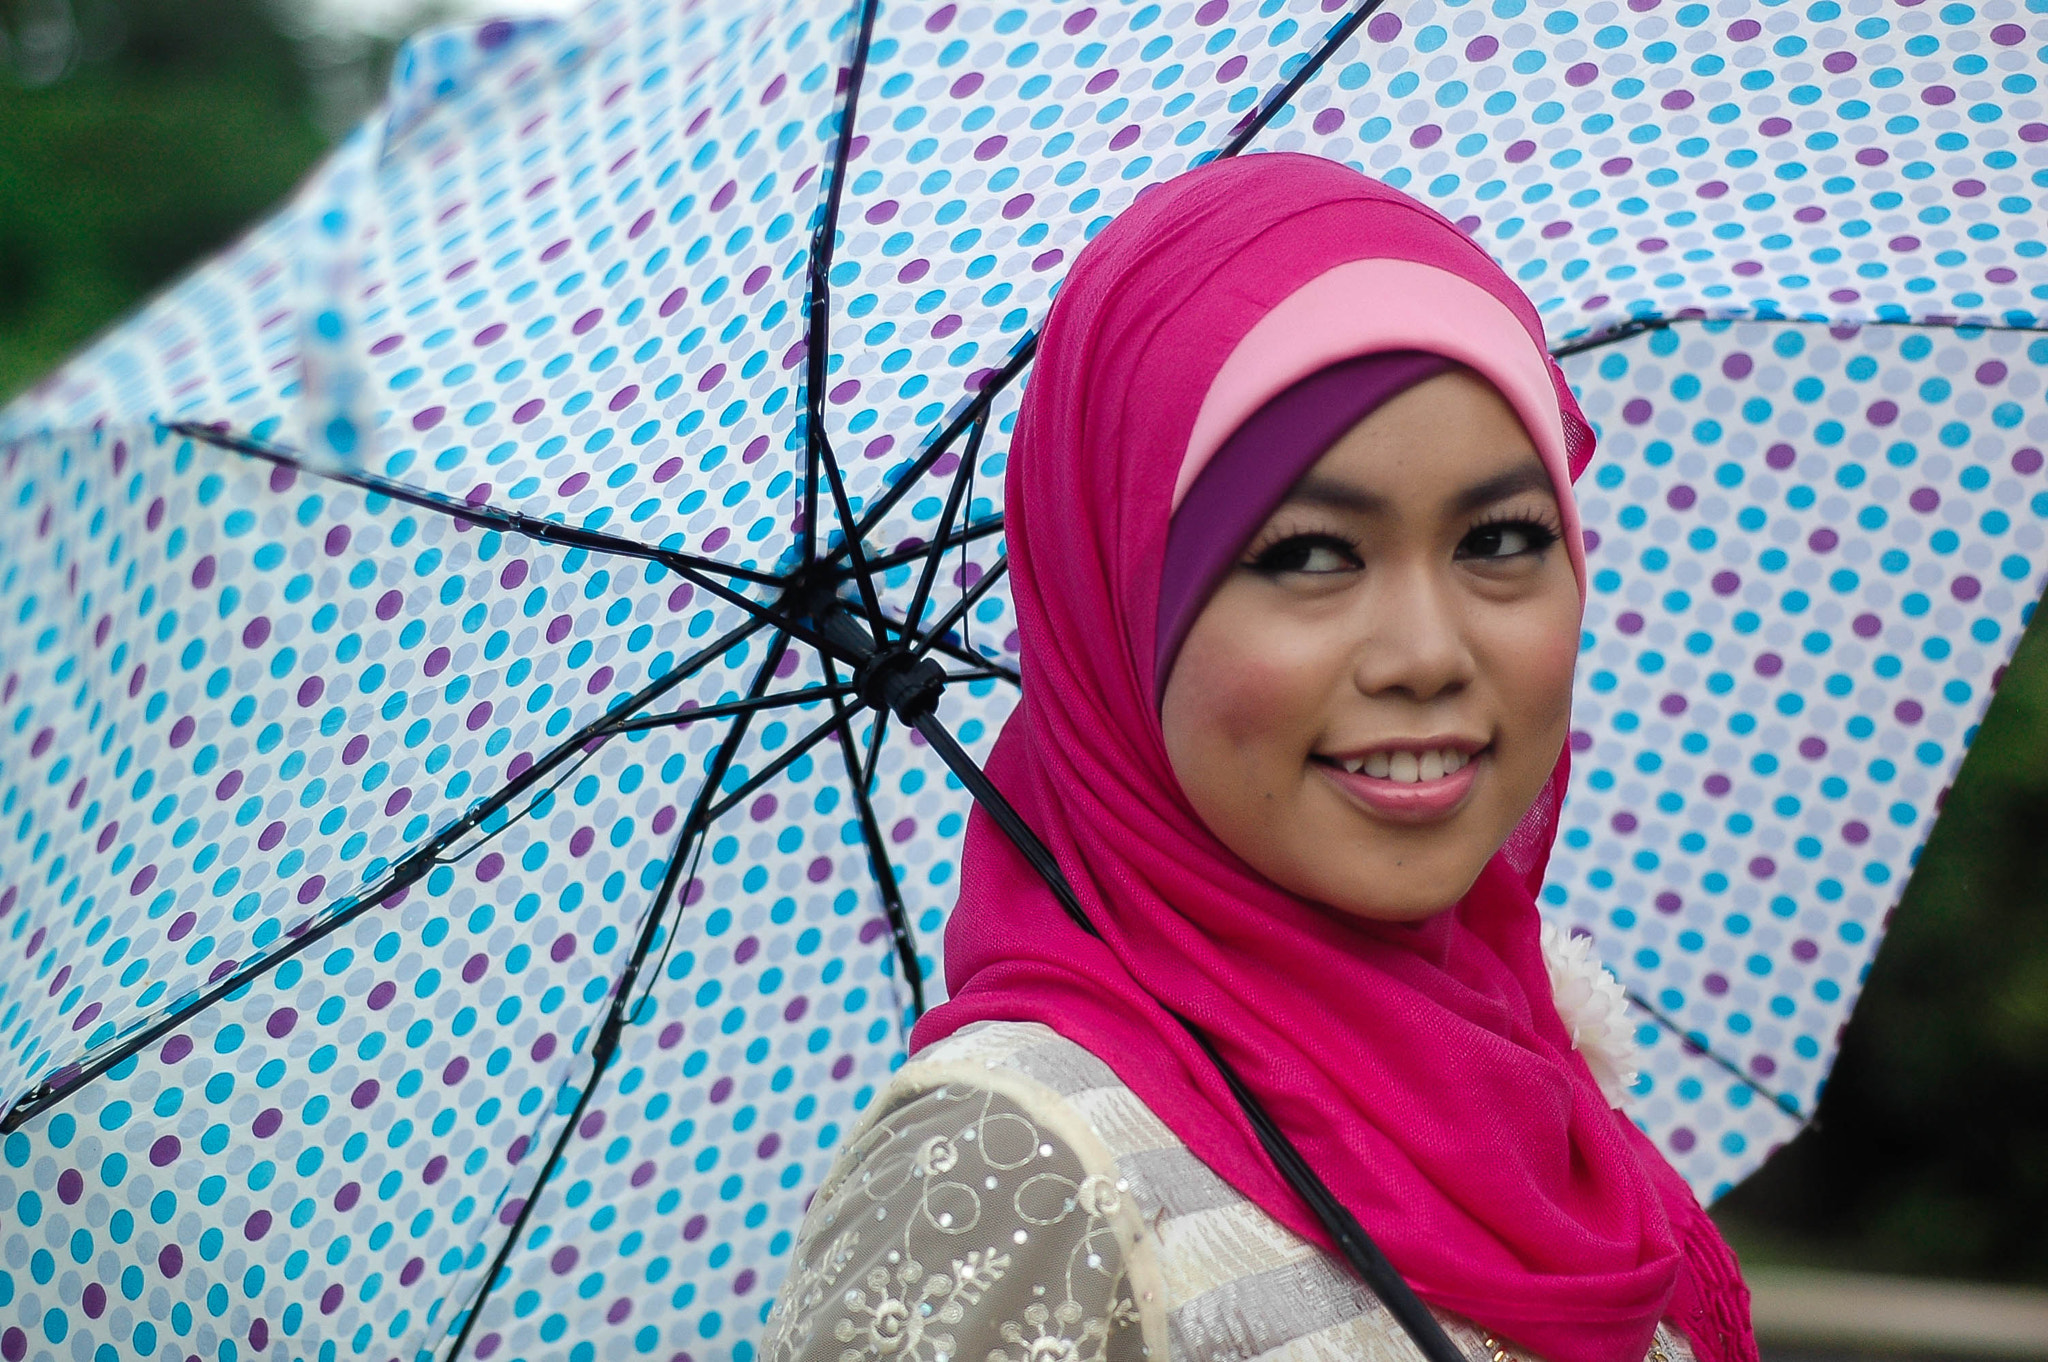 Photograph Woman and The Polka Dot Umbrella by syafiq zainal on 500px